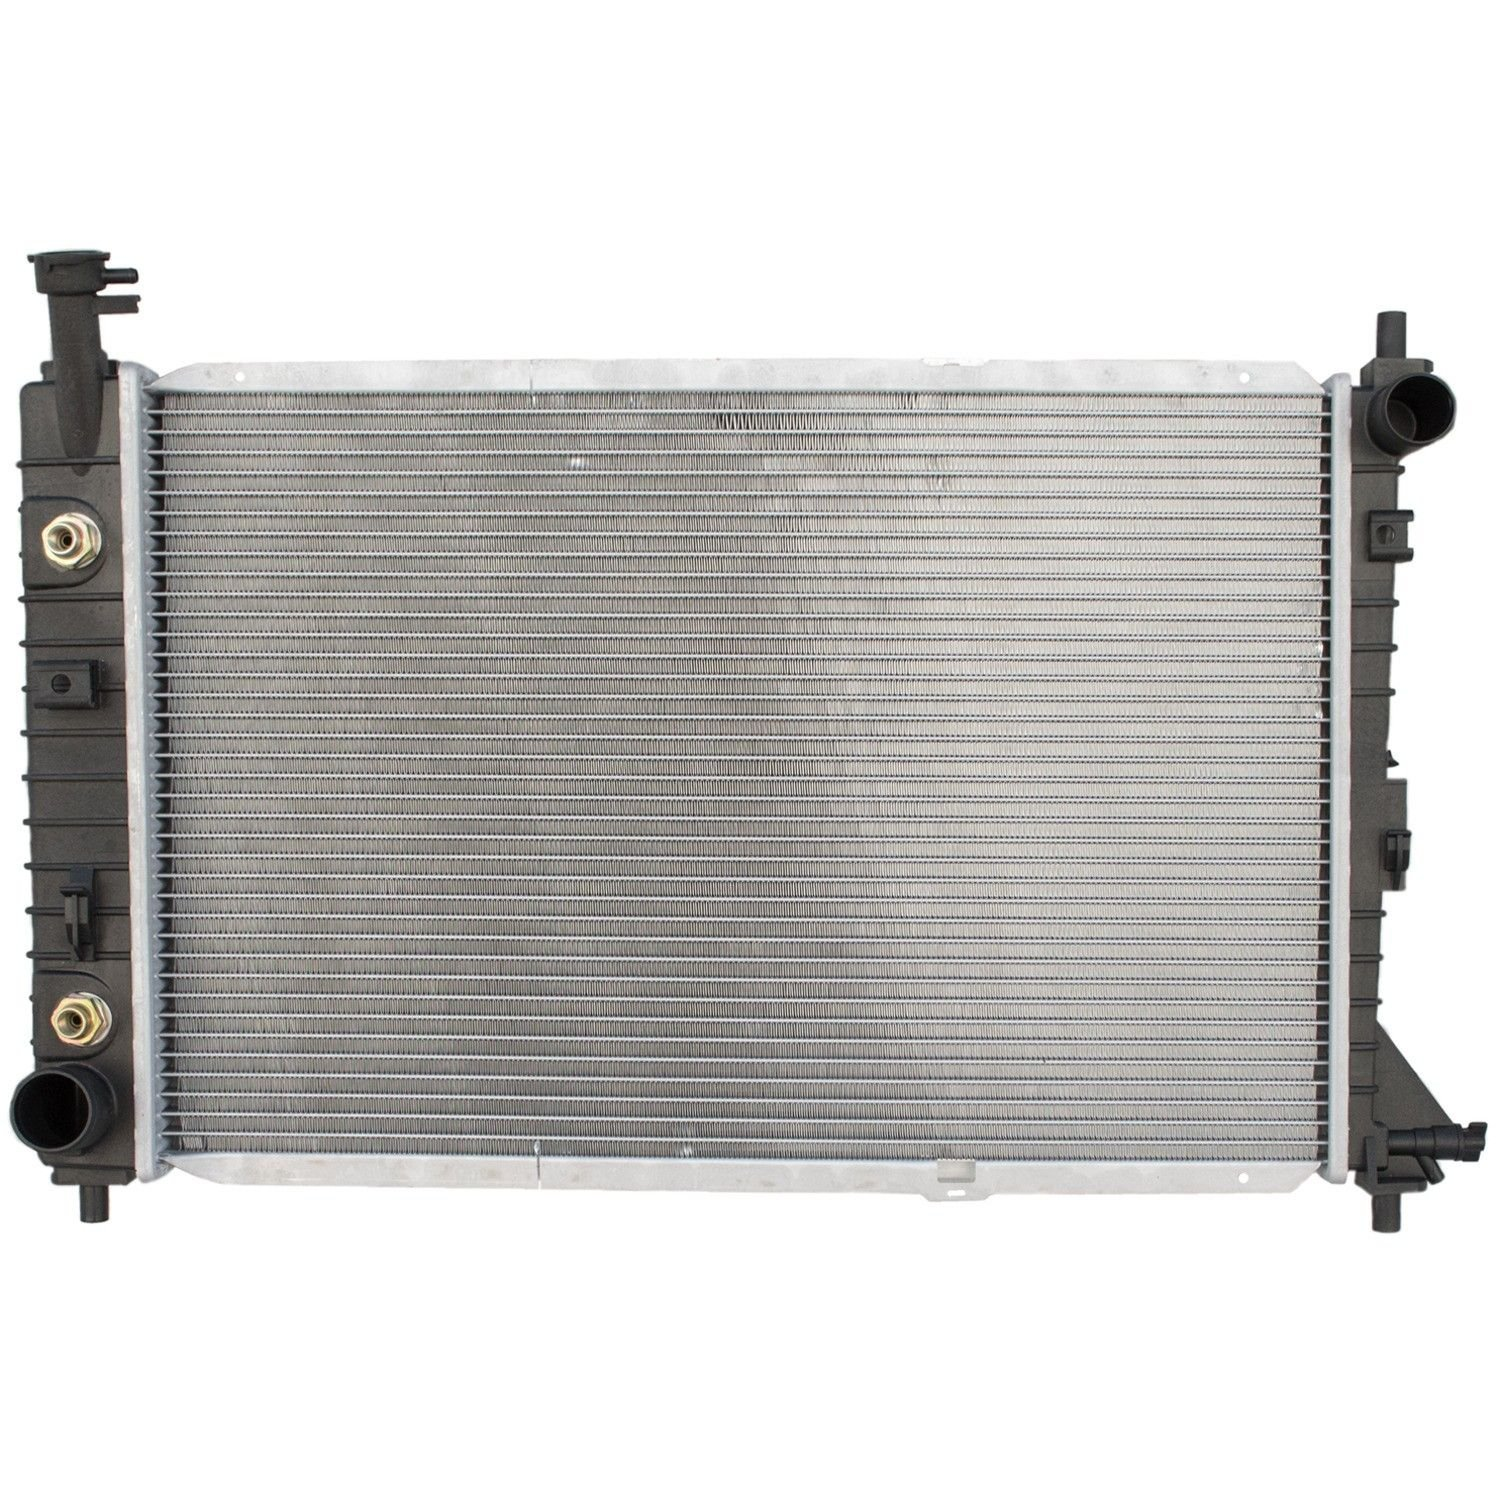 """2138 Radiator For Ford Mustang 1997-2004 3.8 V6 1/"""" Thick"""